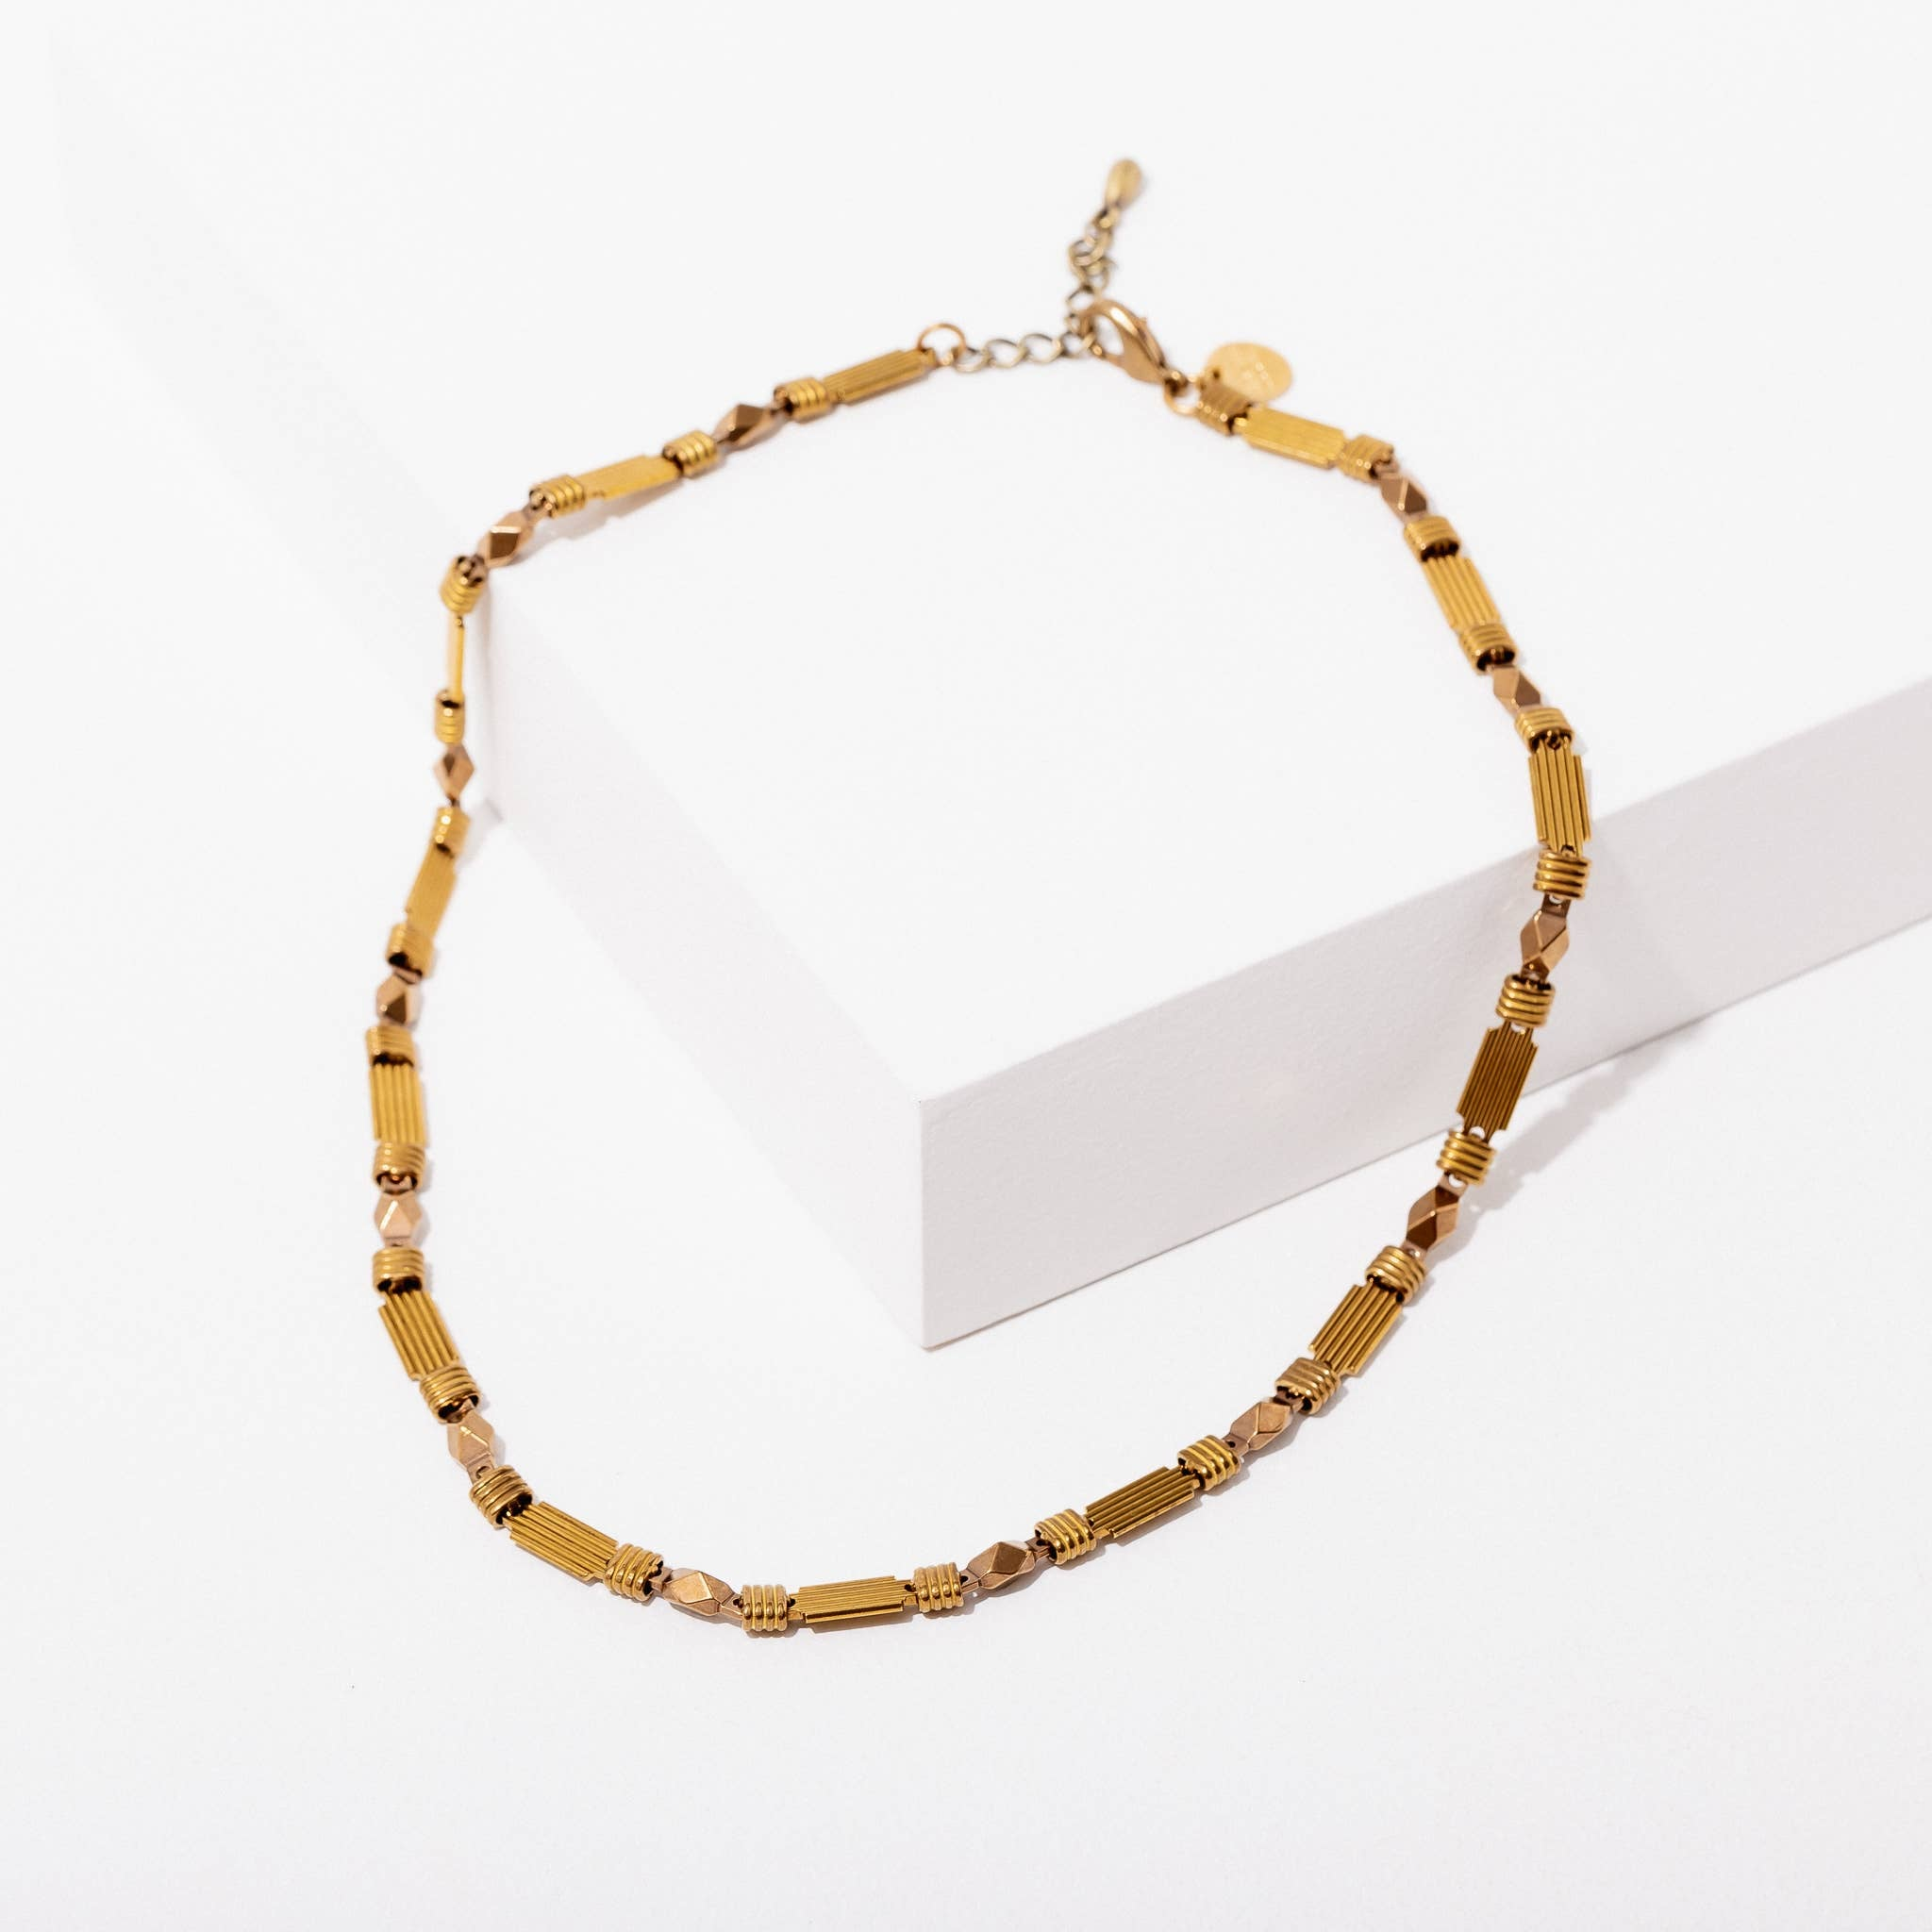 The Lupita Necklace by Larissa Loden